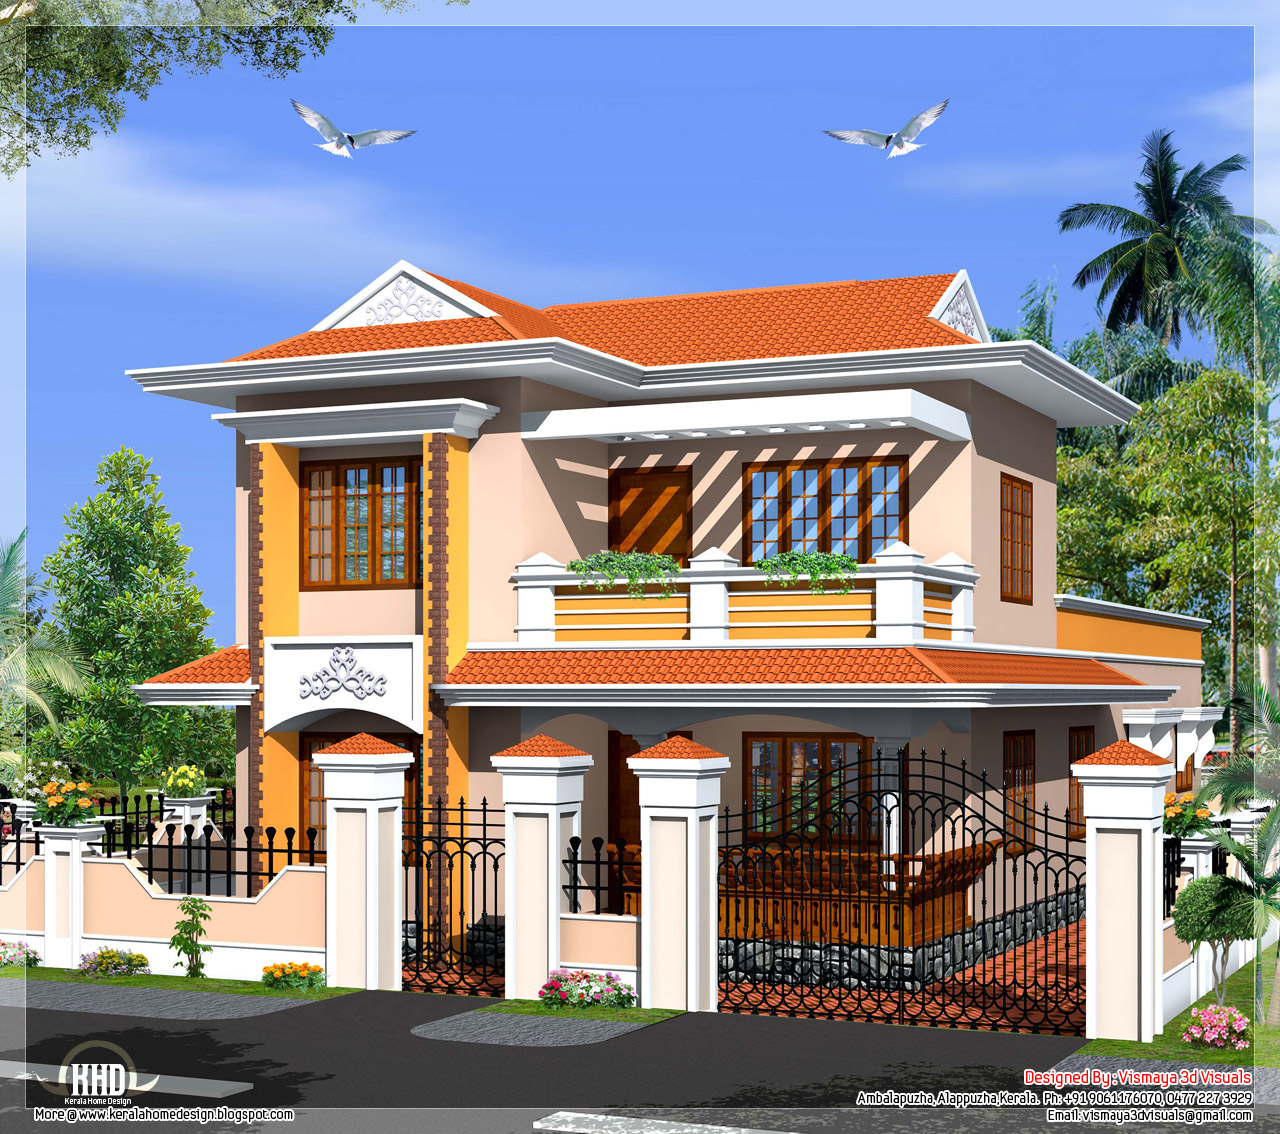 Kerala model villa in 2110 in square feet kerala home for Model house photos in indian